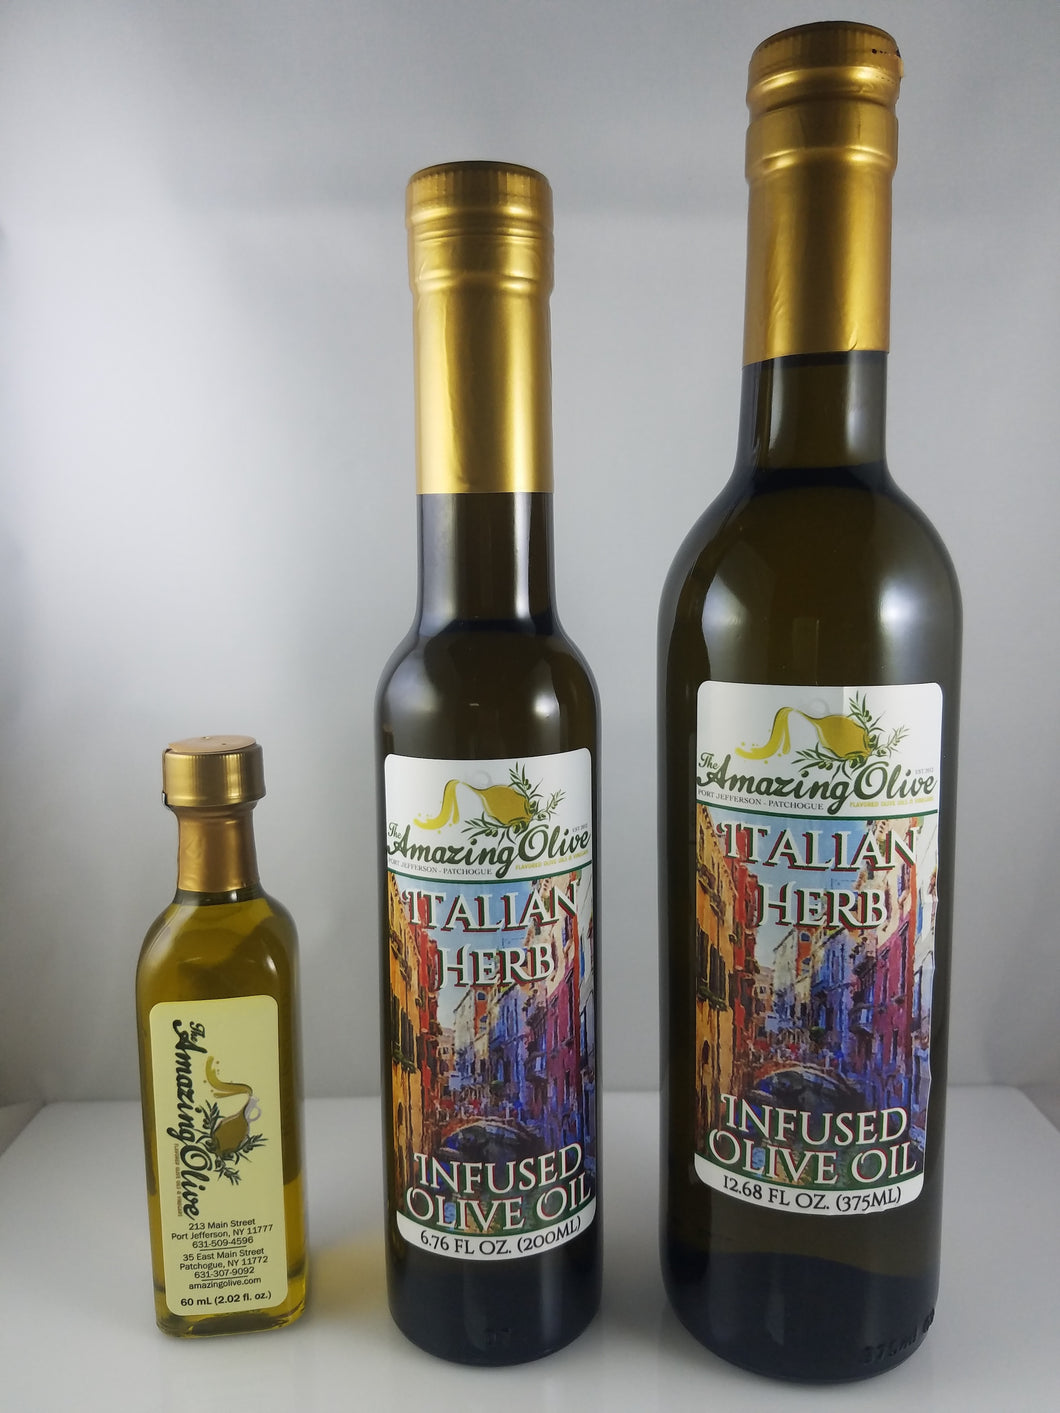 Italian Herb Infused Olive Oil